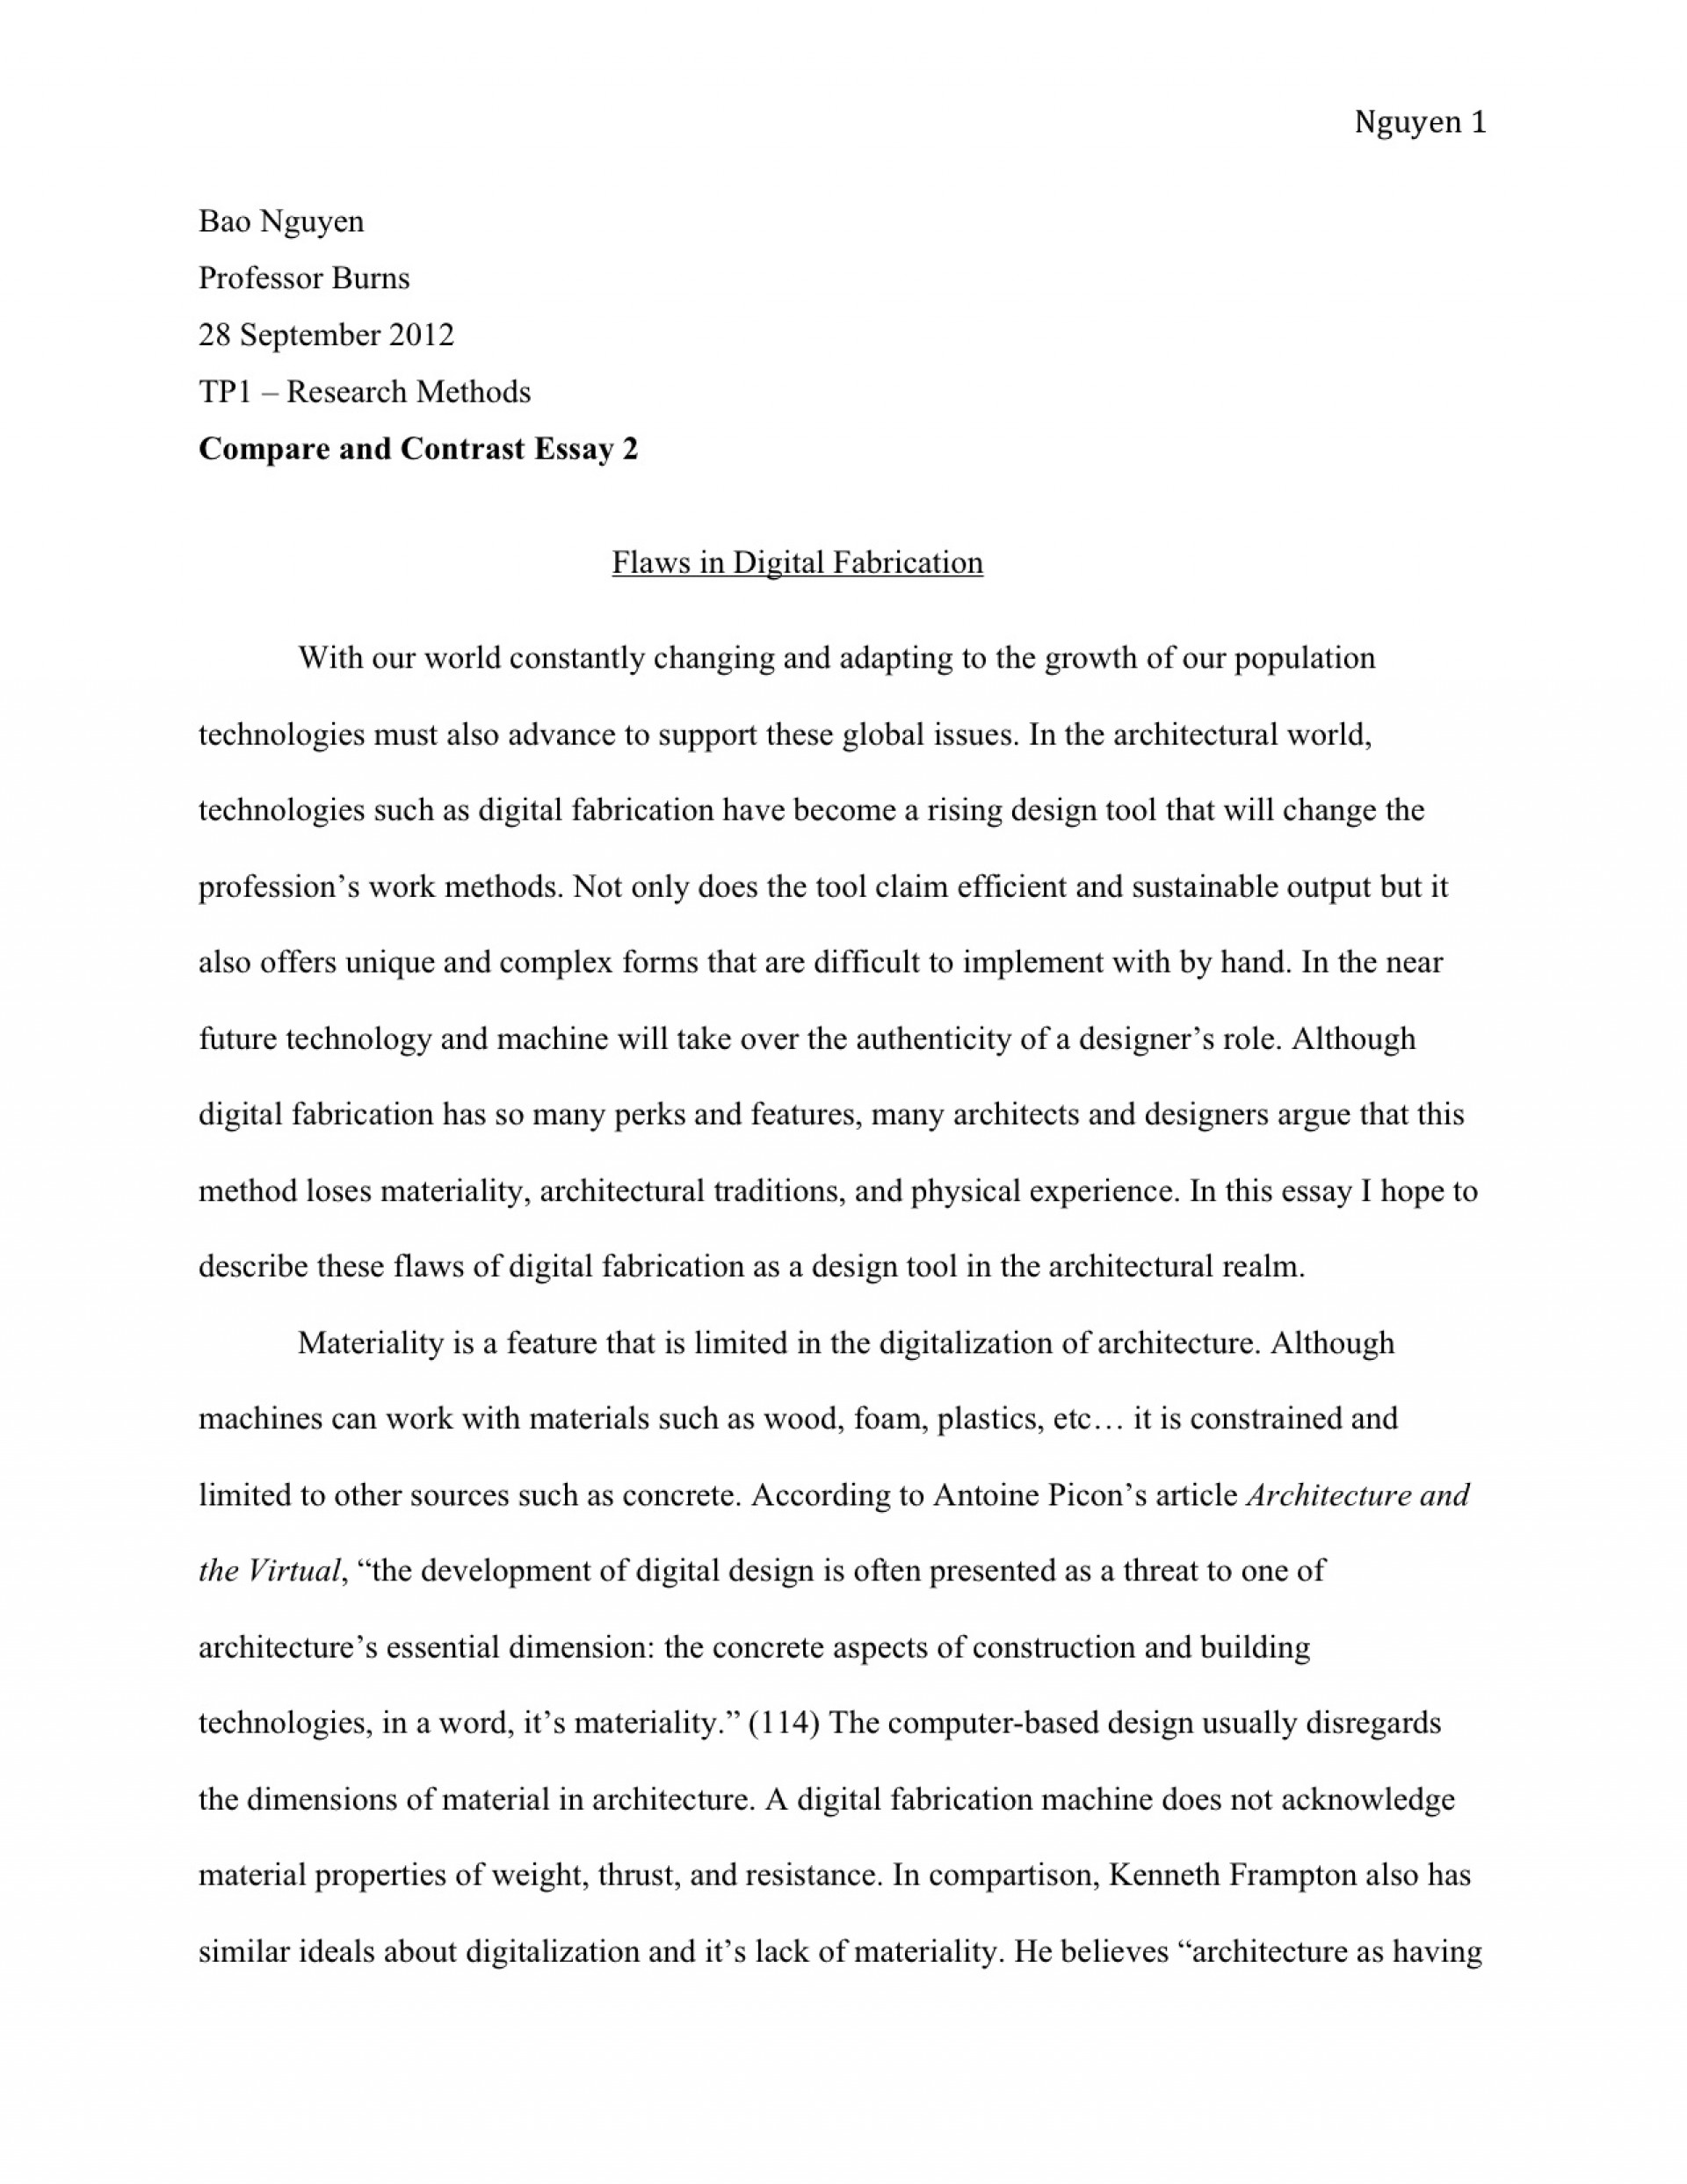 007 Essay Example Good Hooks For Essays Tp1 3 Unforgettable About Gun Control Examples Of Expository Persuasive 1920